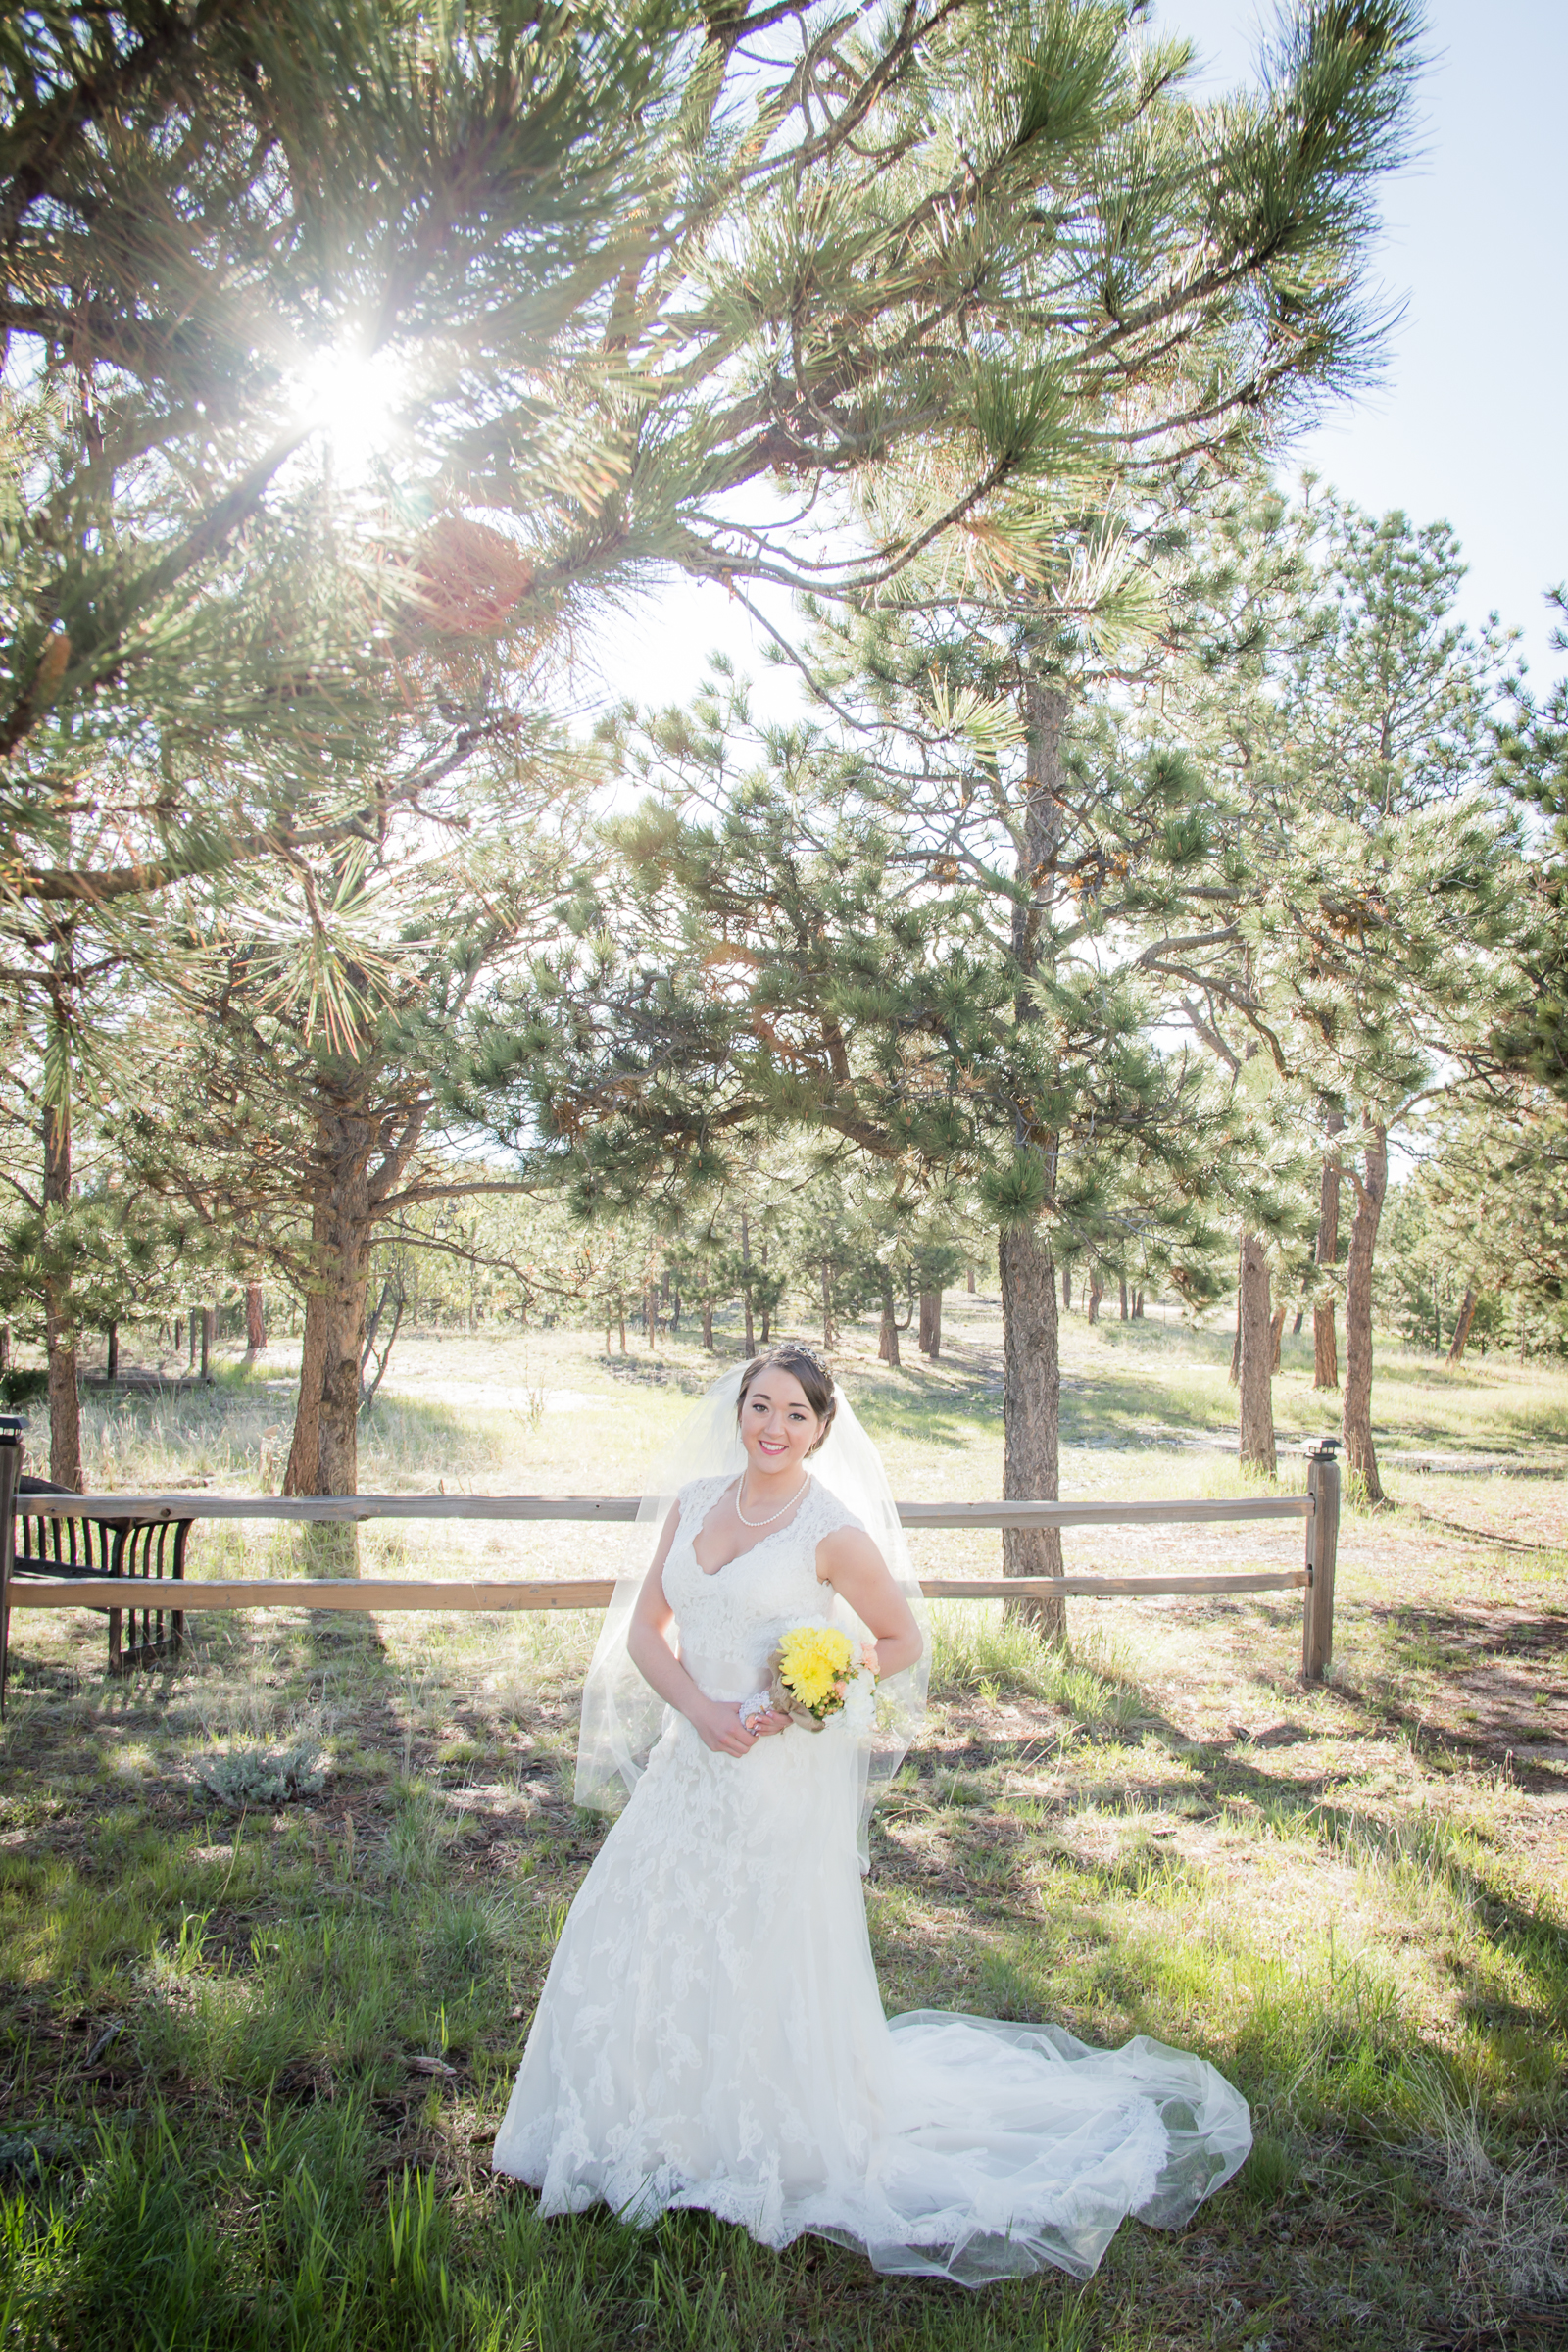 Stacy Carosa Photography Package Add-Ons